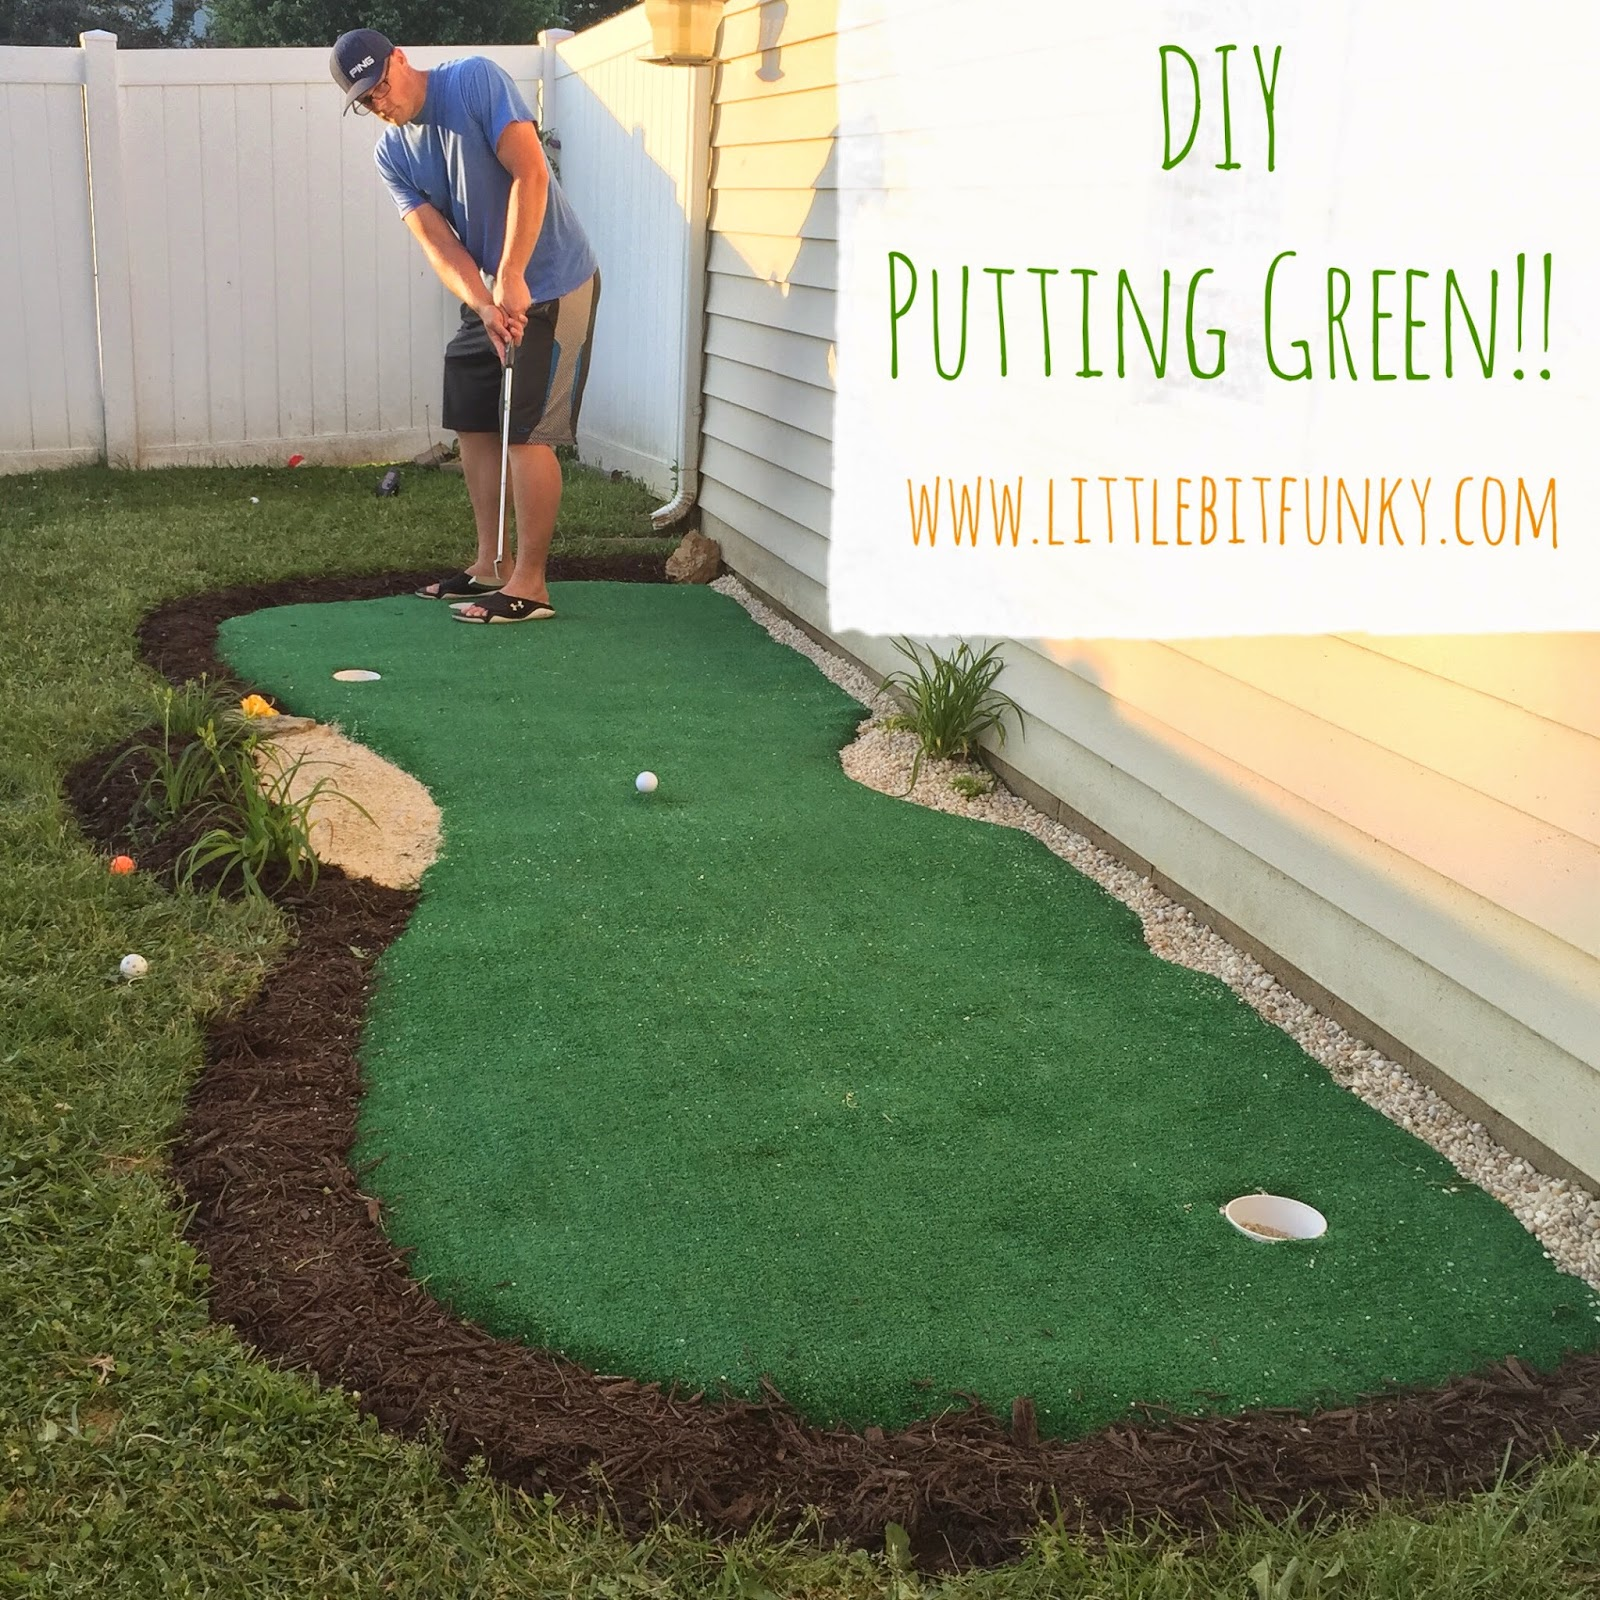 How To Build A Backyard Putting Green   Large And Beautiful Photos. Photo  To Select How To Build A Backyard Putting Green | Design Your Home